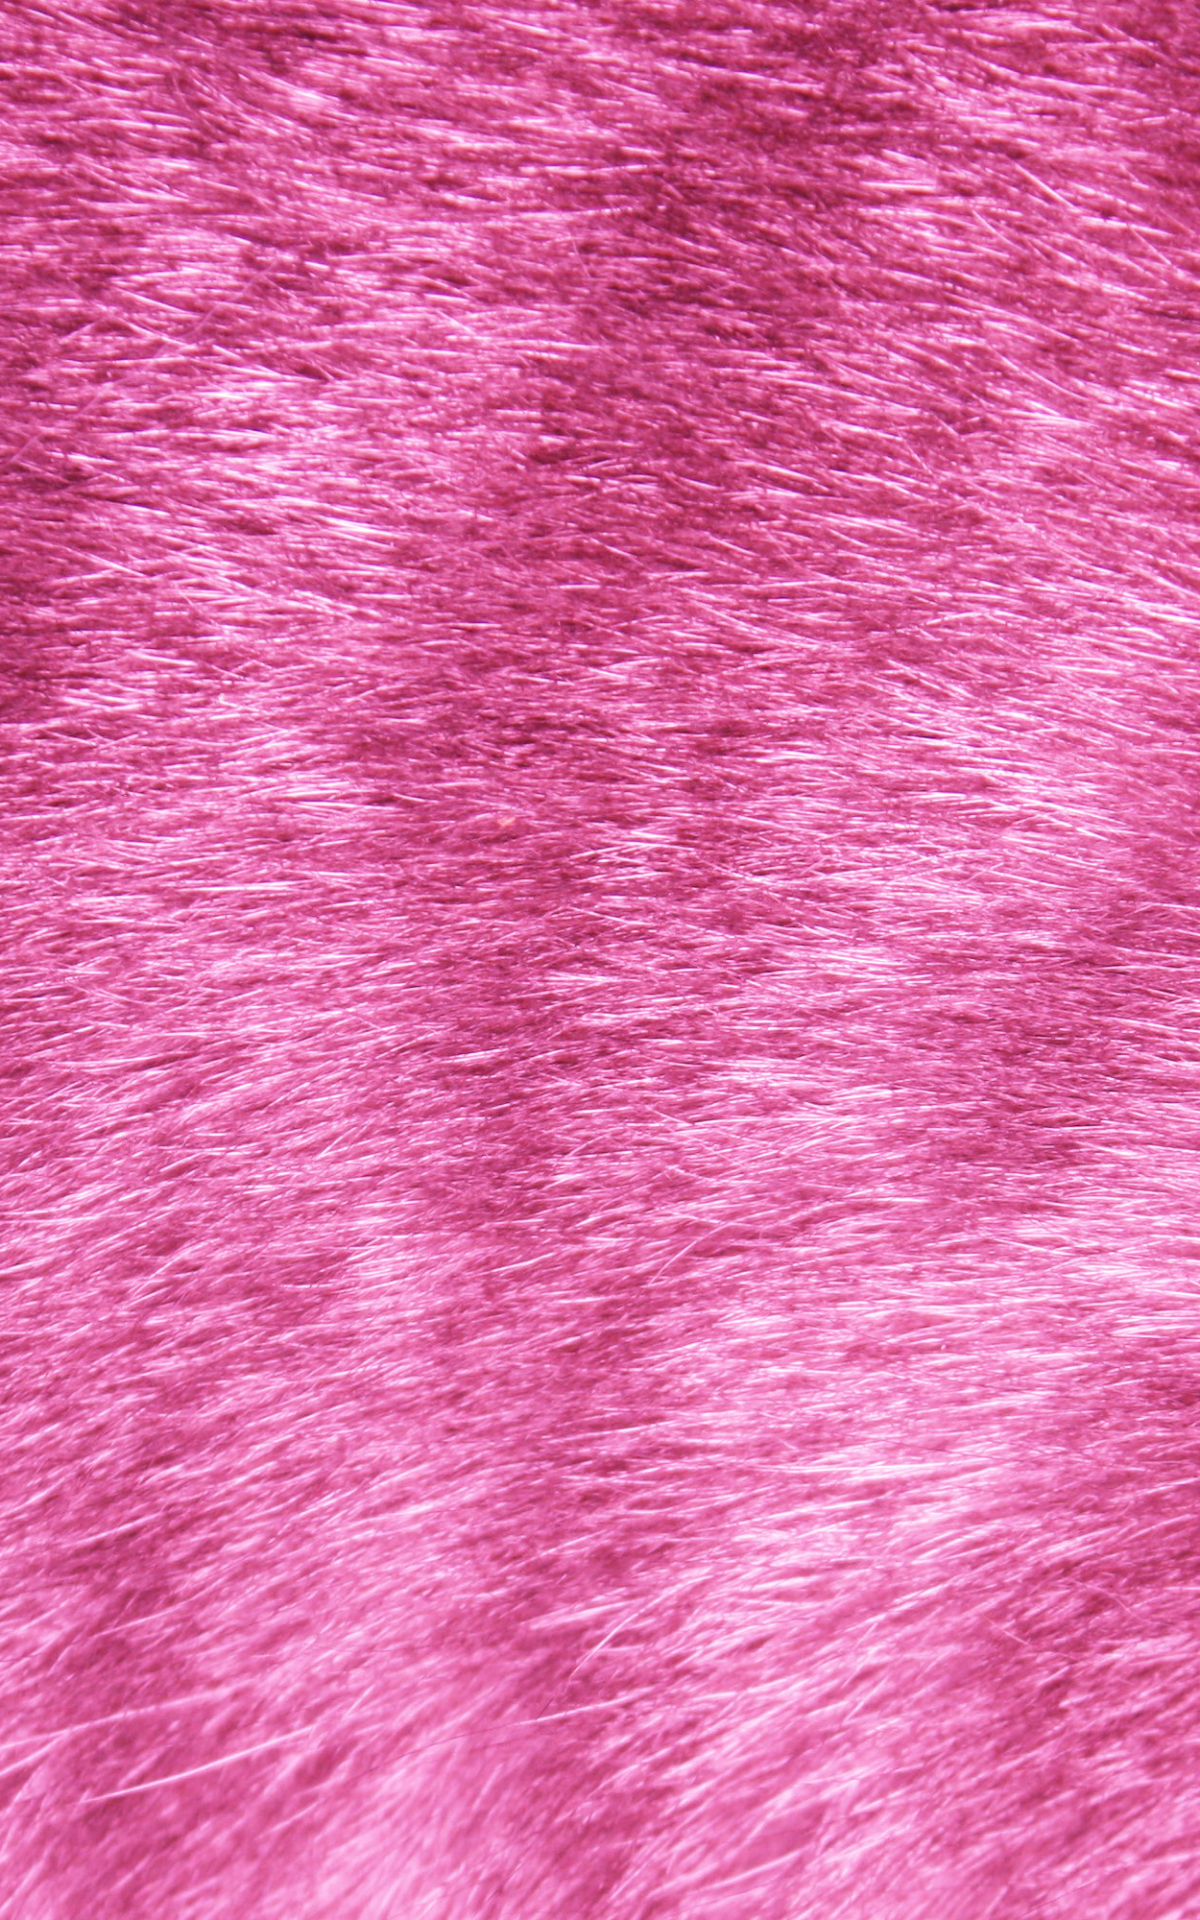 Free Download Pink Tabby Fur Texture High Resolution Photo